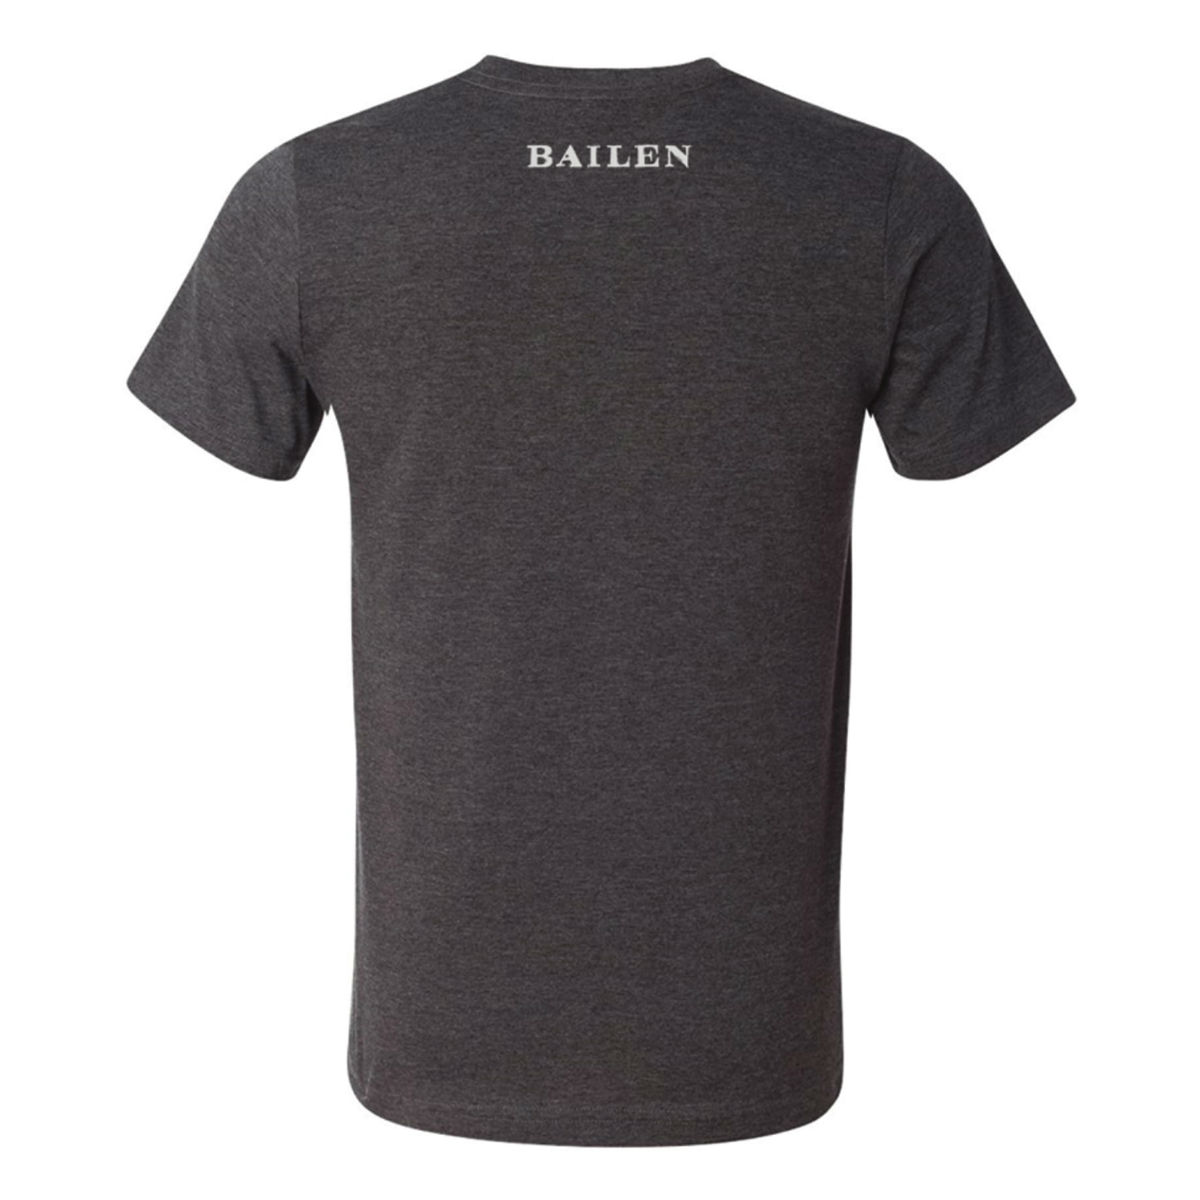 Bailen 'Thrilled To Be Here' Unisex Tee Shirt